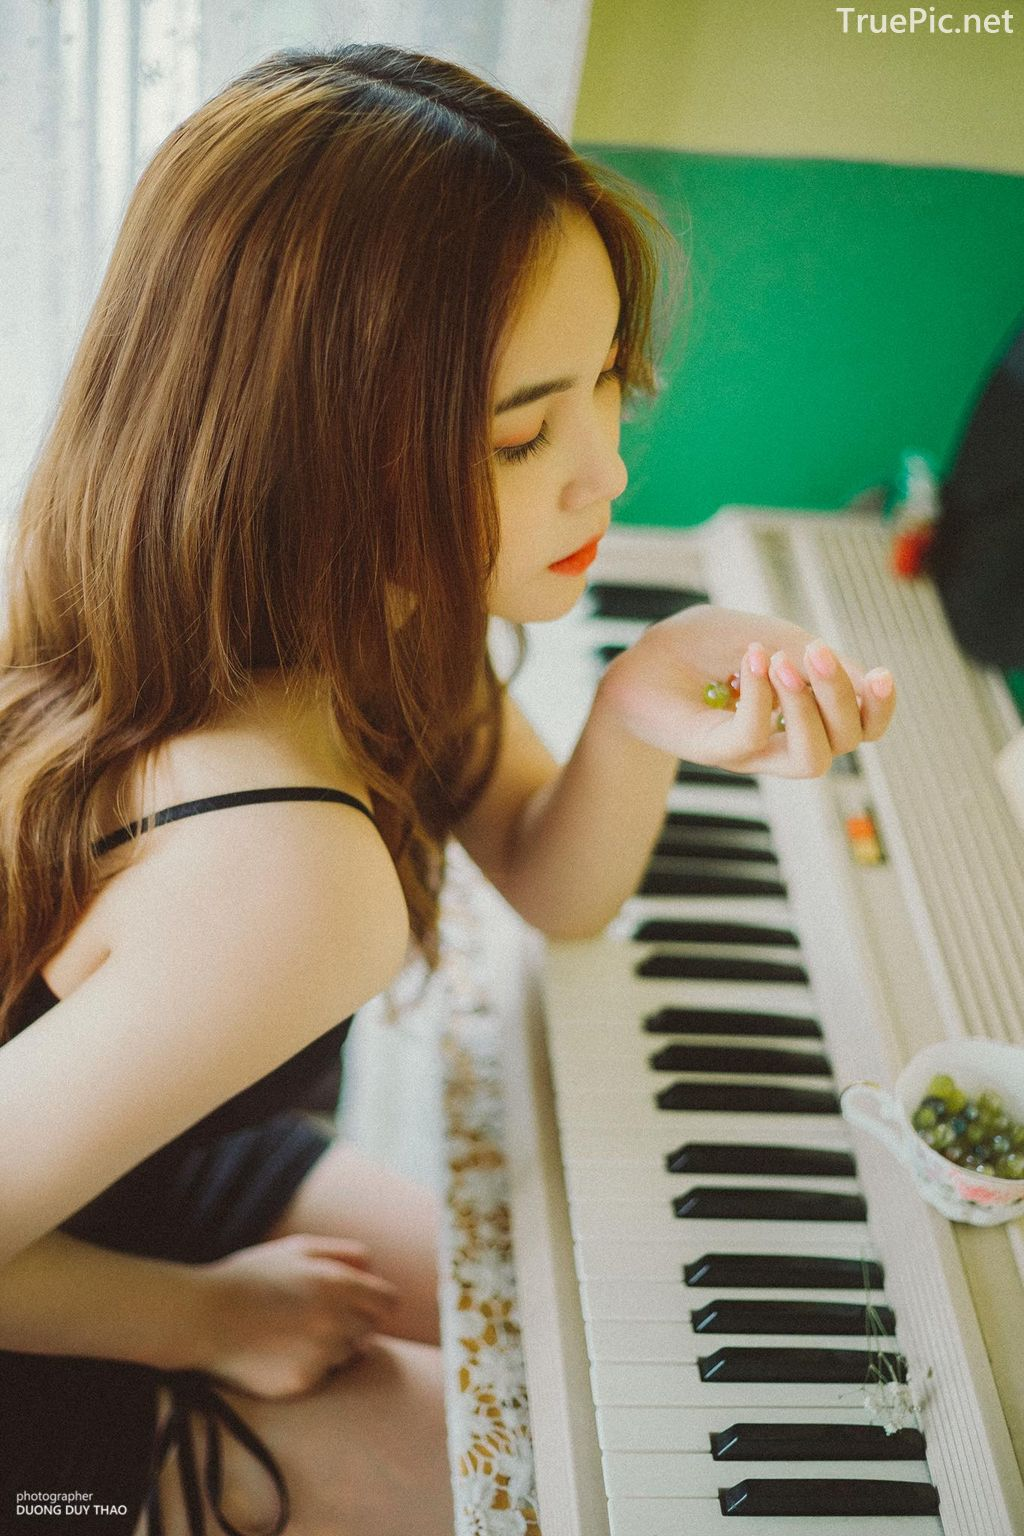 Vietnamese cute model - Nguyen Yen Nhi - One day practicing piano - Picture 4